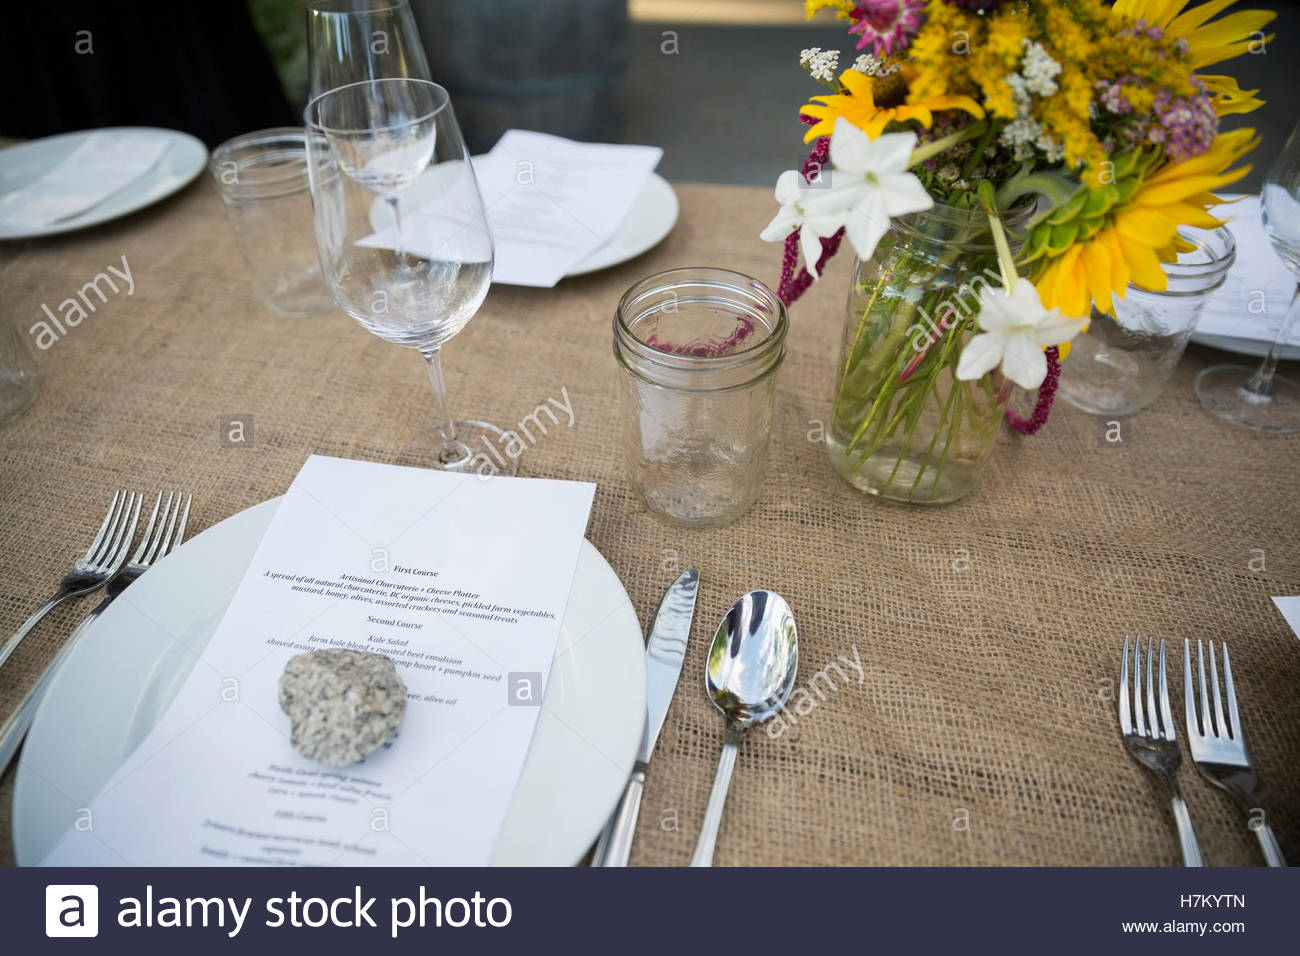 Menu Under Rock On Table At Harvest Dinner Placesetting Stock Photo